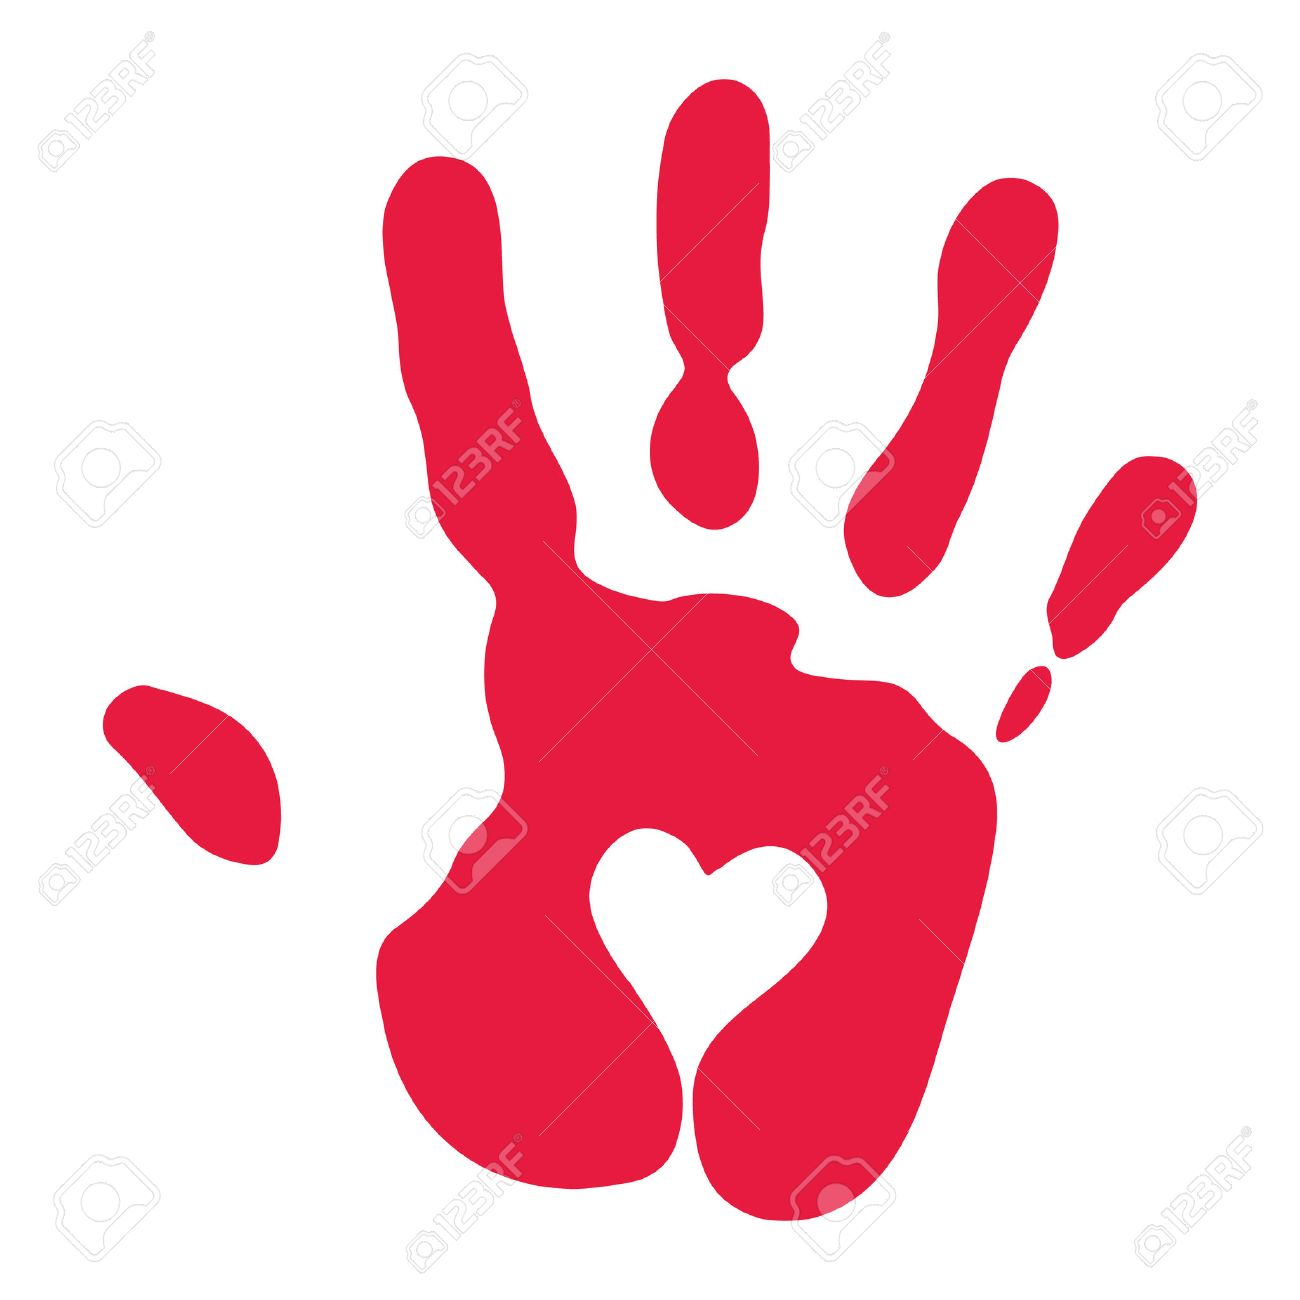 red handprint with heart symbol royalty free cliparts vectors and rh 123rf com hand print vector ai hand print vector art